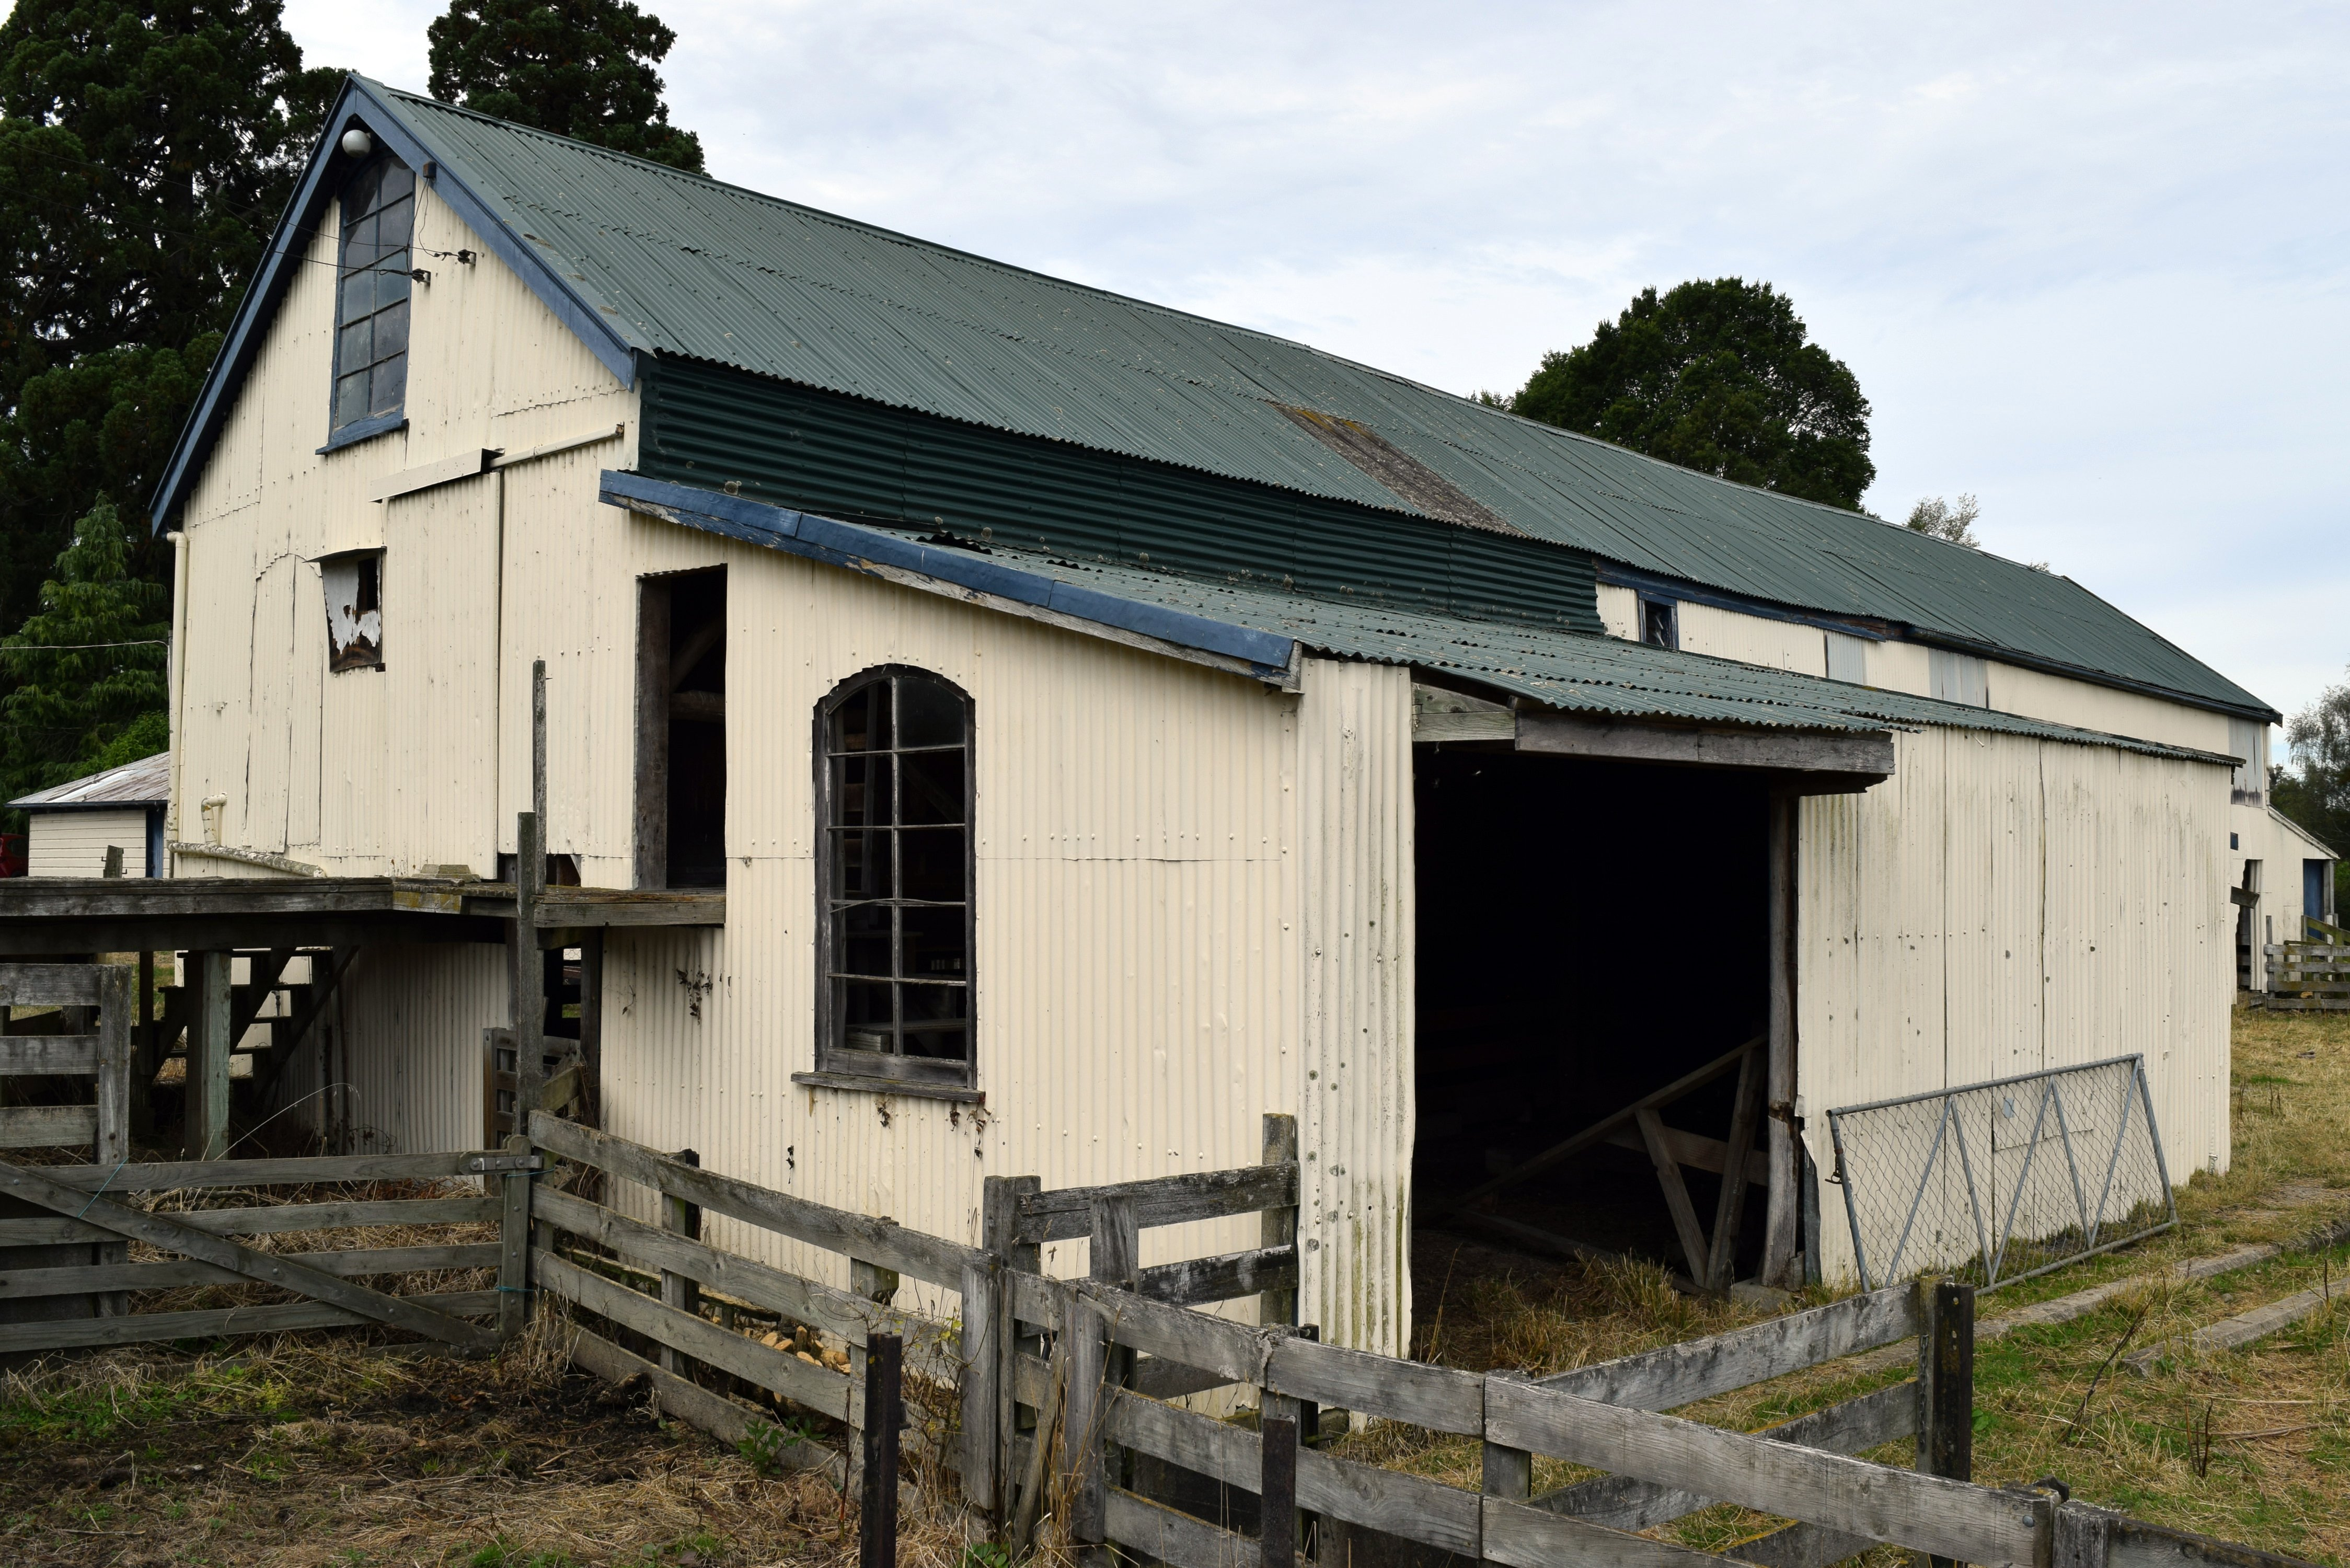 The woolshed on Salisbury Estate in North Taieri. Photo: Shawn McAvinue